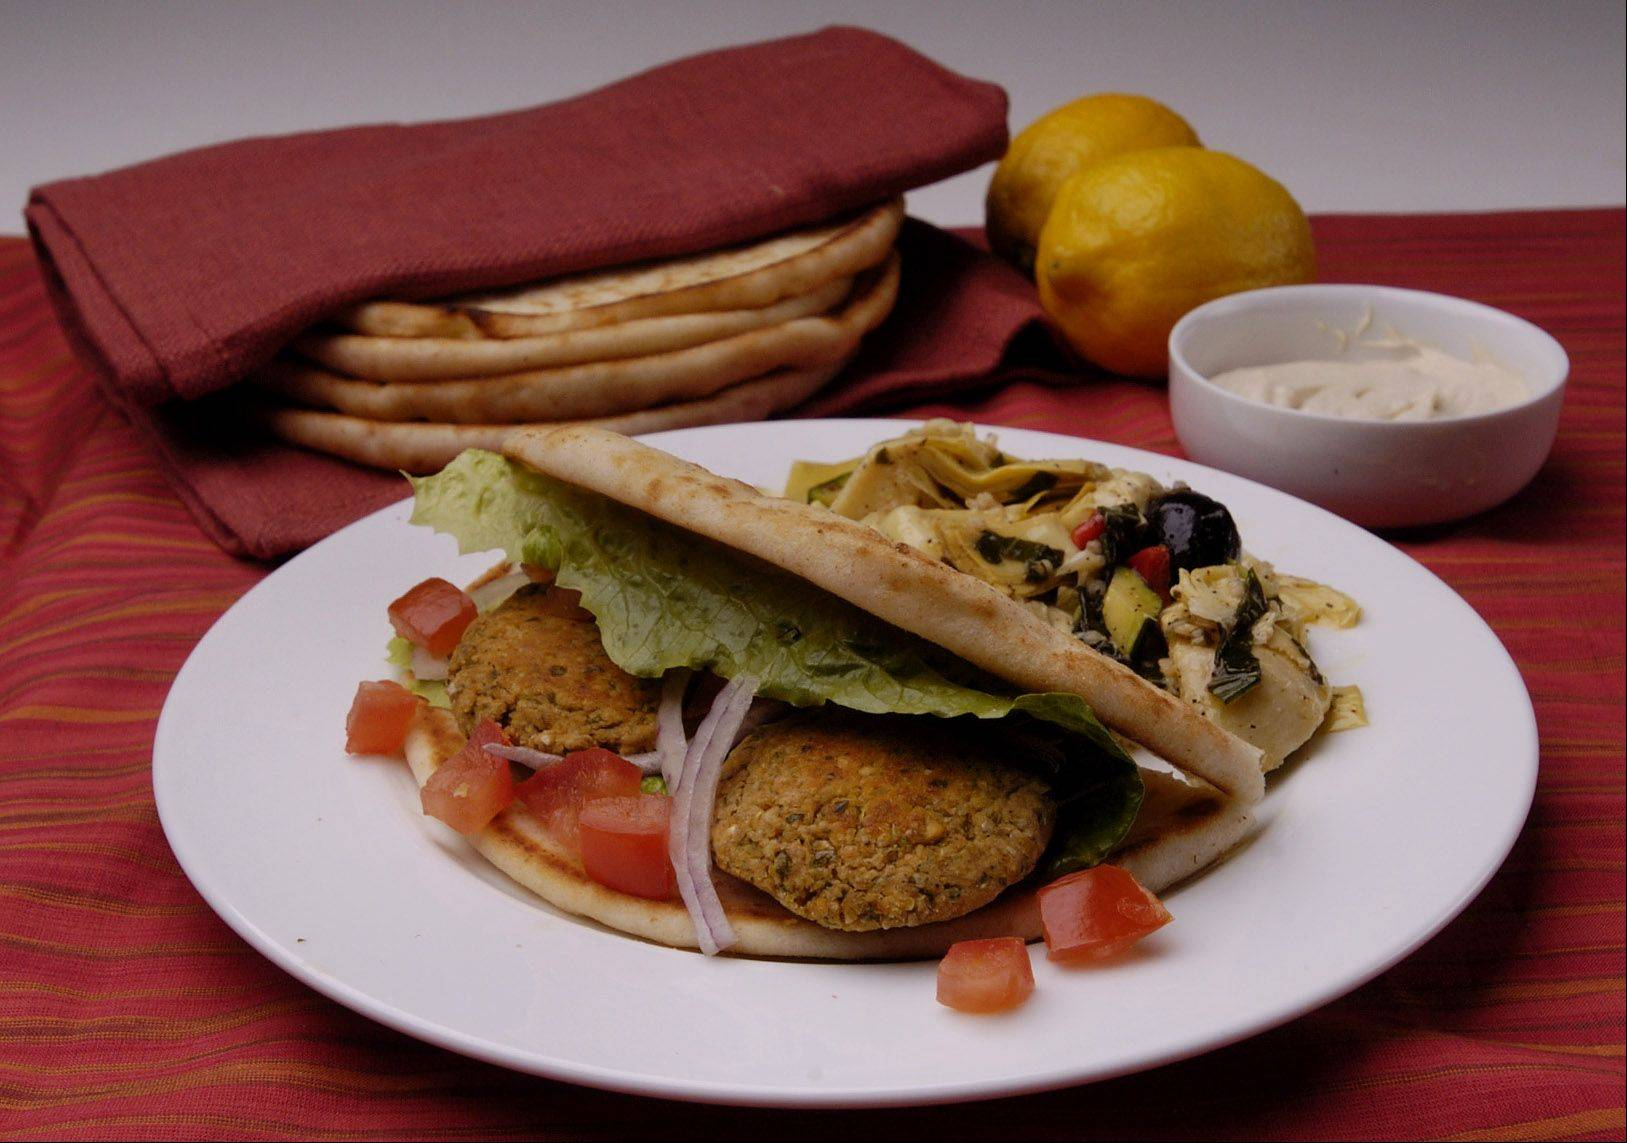 A short clip on the Disney Channel inspired Jerome Gabriel to try falafel. The chickpea patties are a staple of Middle Eastern cuisines.